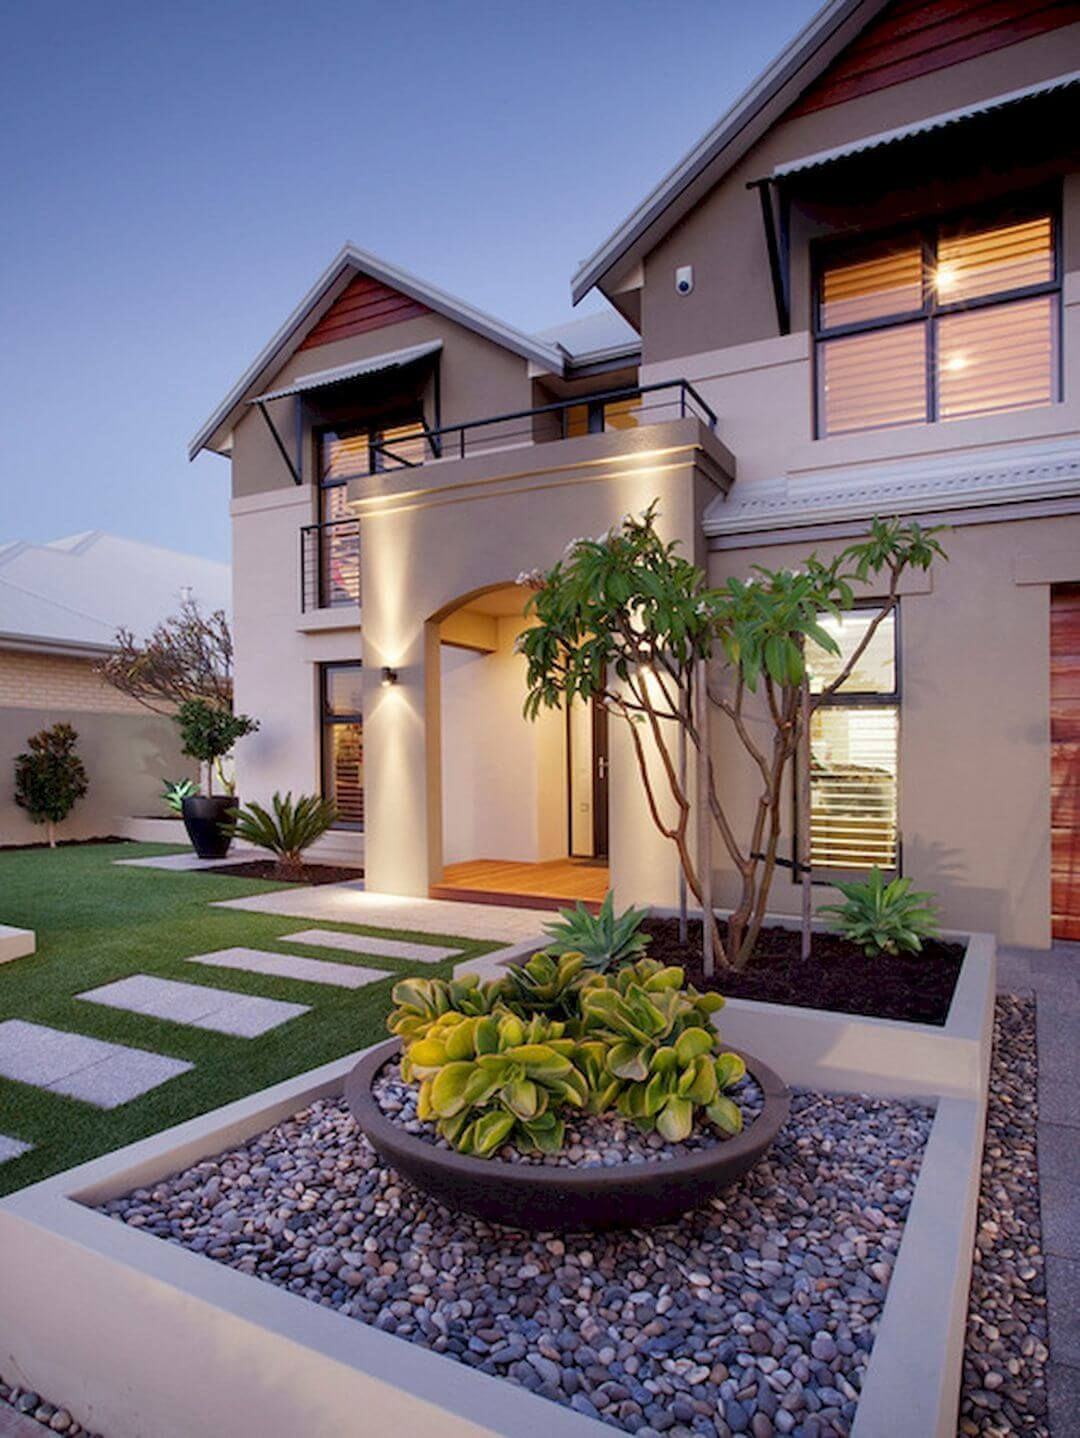 Stylish Front Yard Landscaping Ideas For Modern Houses Harptimes Com Front Yard Landscaping Design Modern Front Yard Front Yard Garden Design